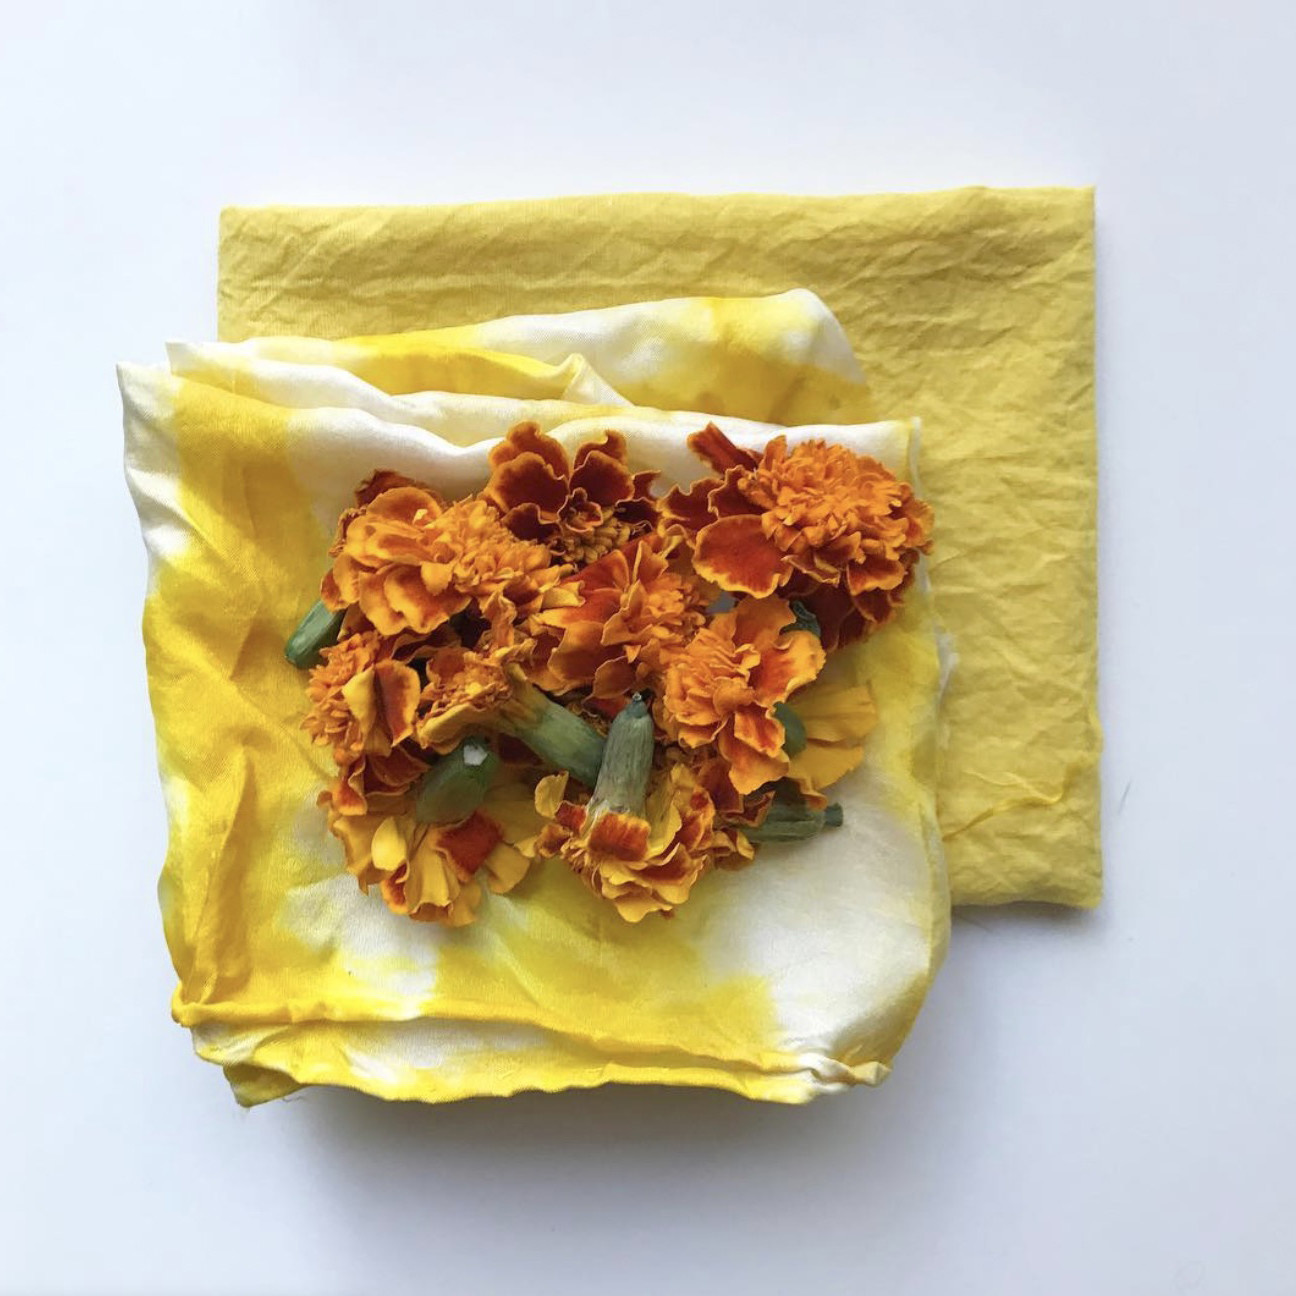 Northern Dyer Northern Dyer Grow Your Own Natural Plant Dye Kit - Marigold Flowers - Yellow/Orange